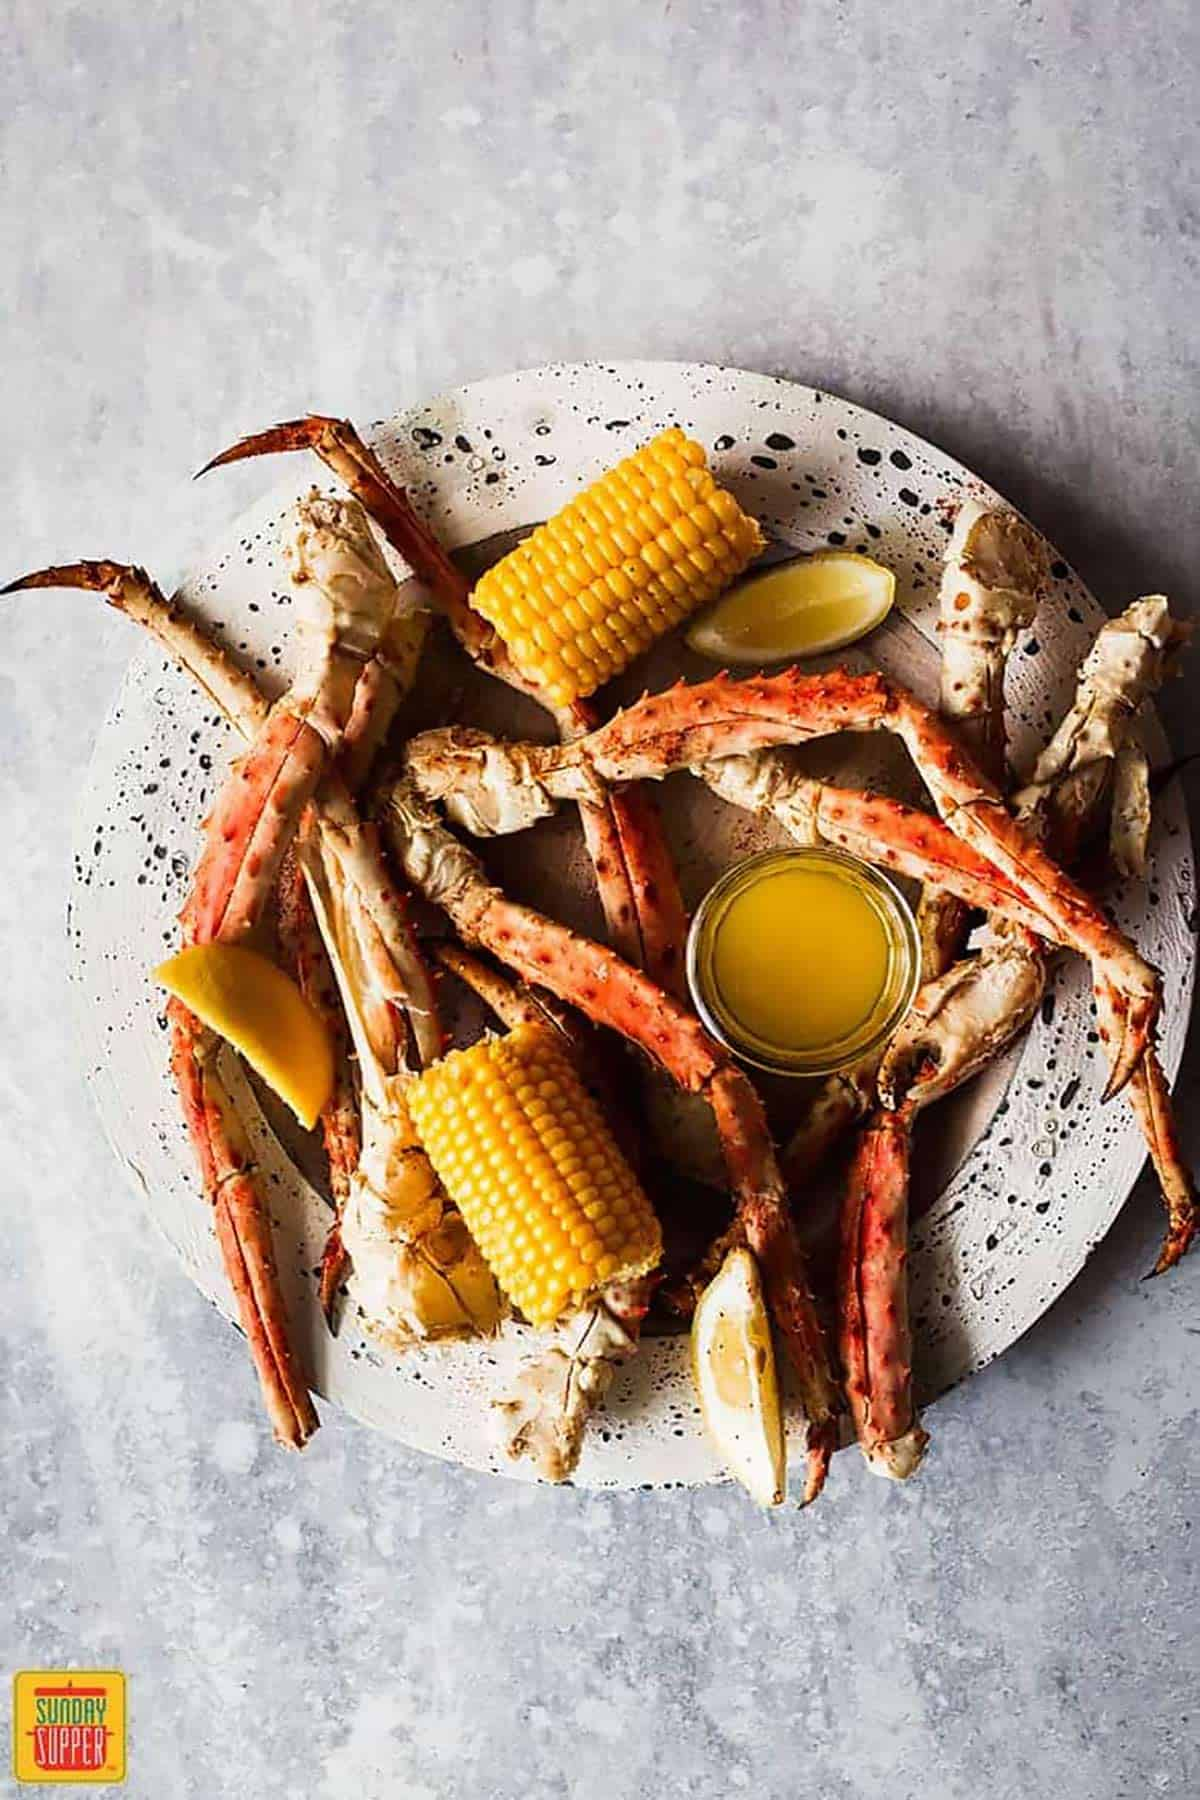 Steamed crab legs on a speckled plate with corn on the cob halves and a small dish of garlic butter sauce